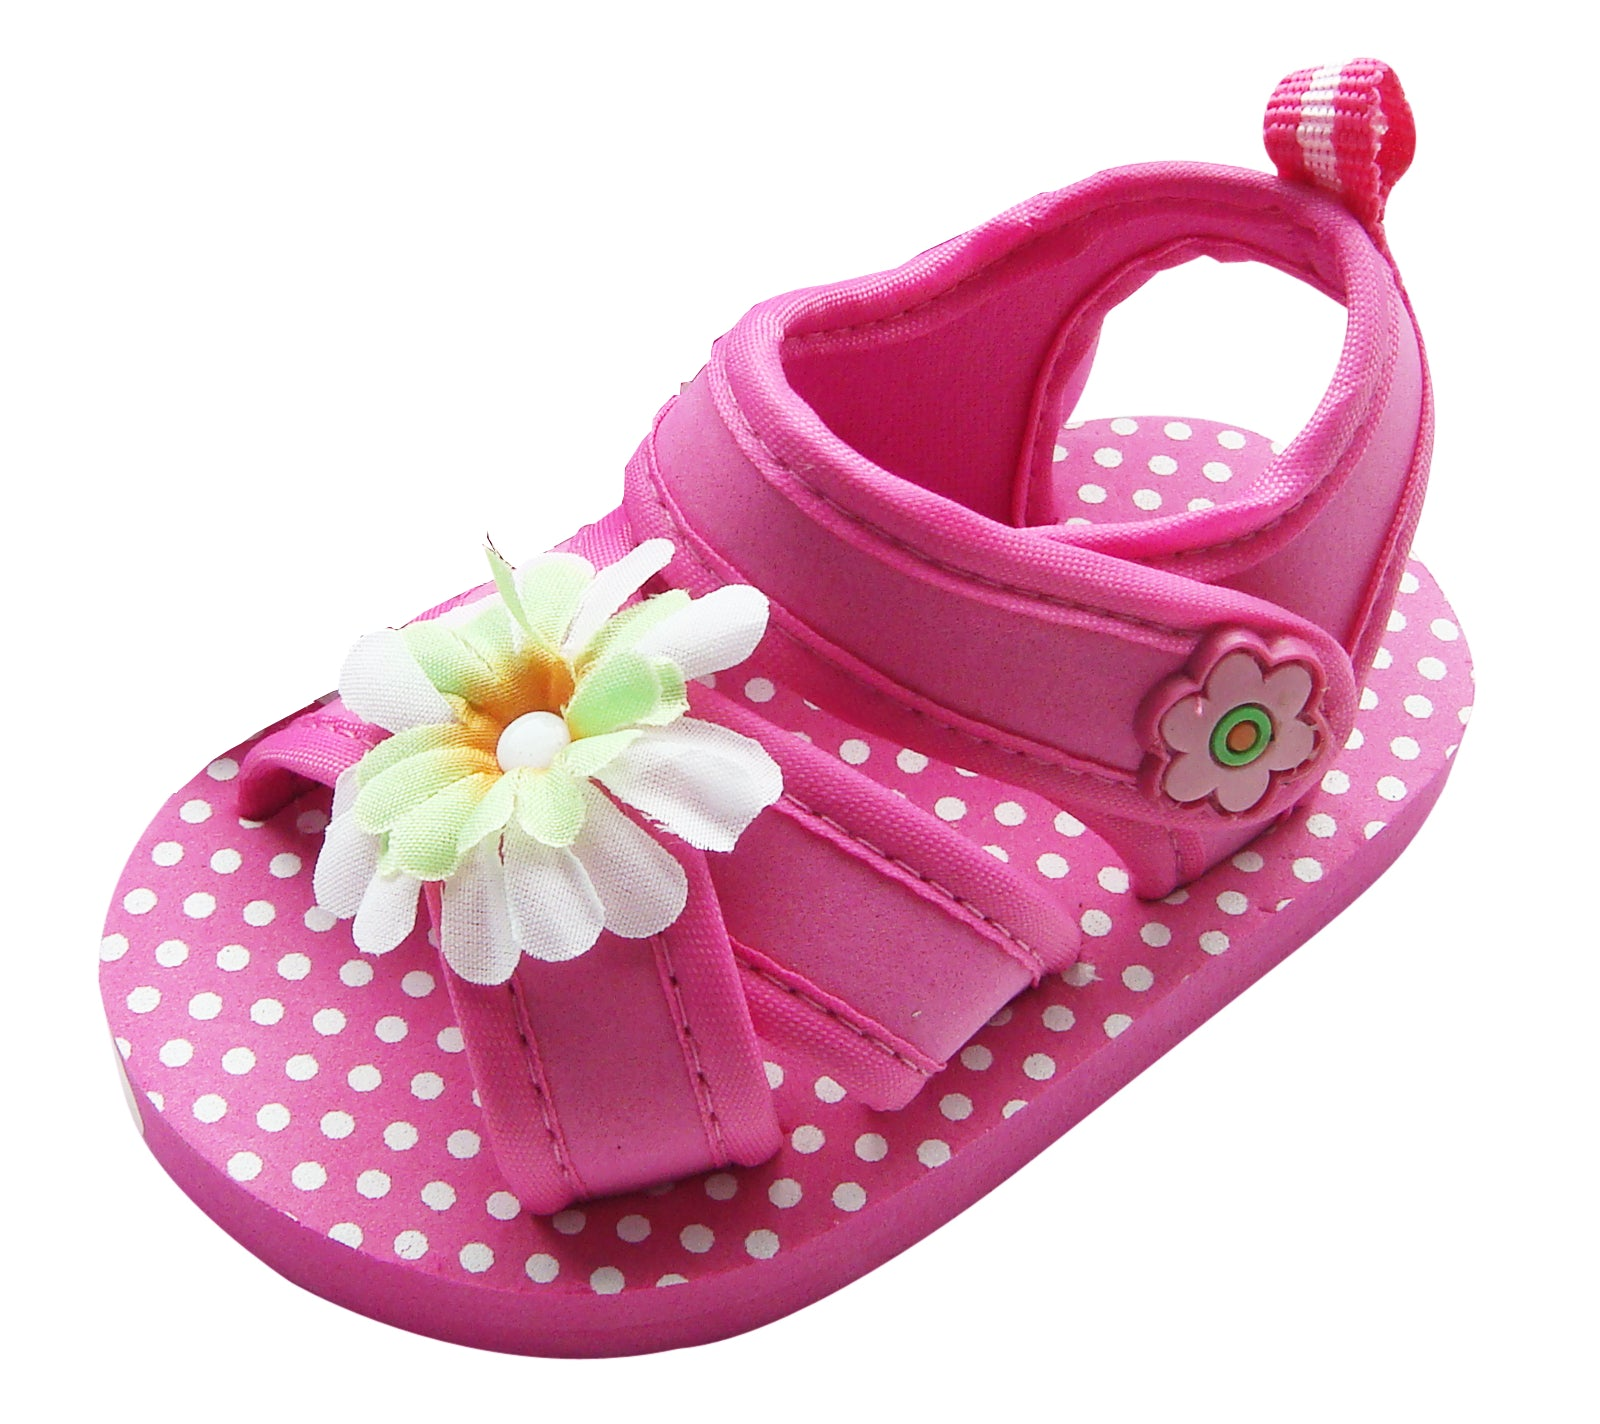 MABINI Baby Girls Flower Design With Polka Dot Footbed Summer Eva Sandals